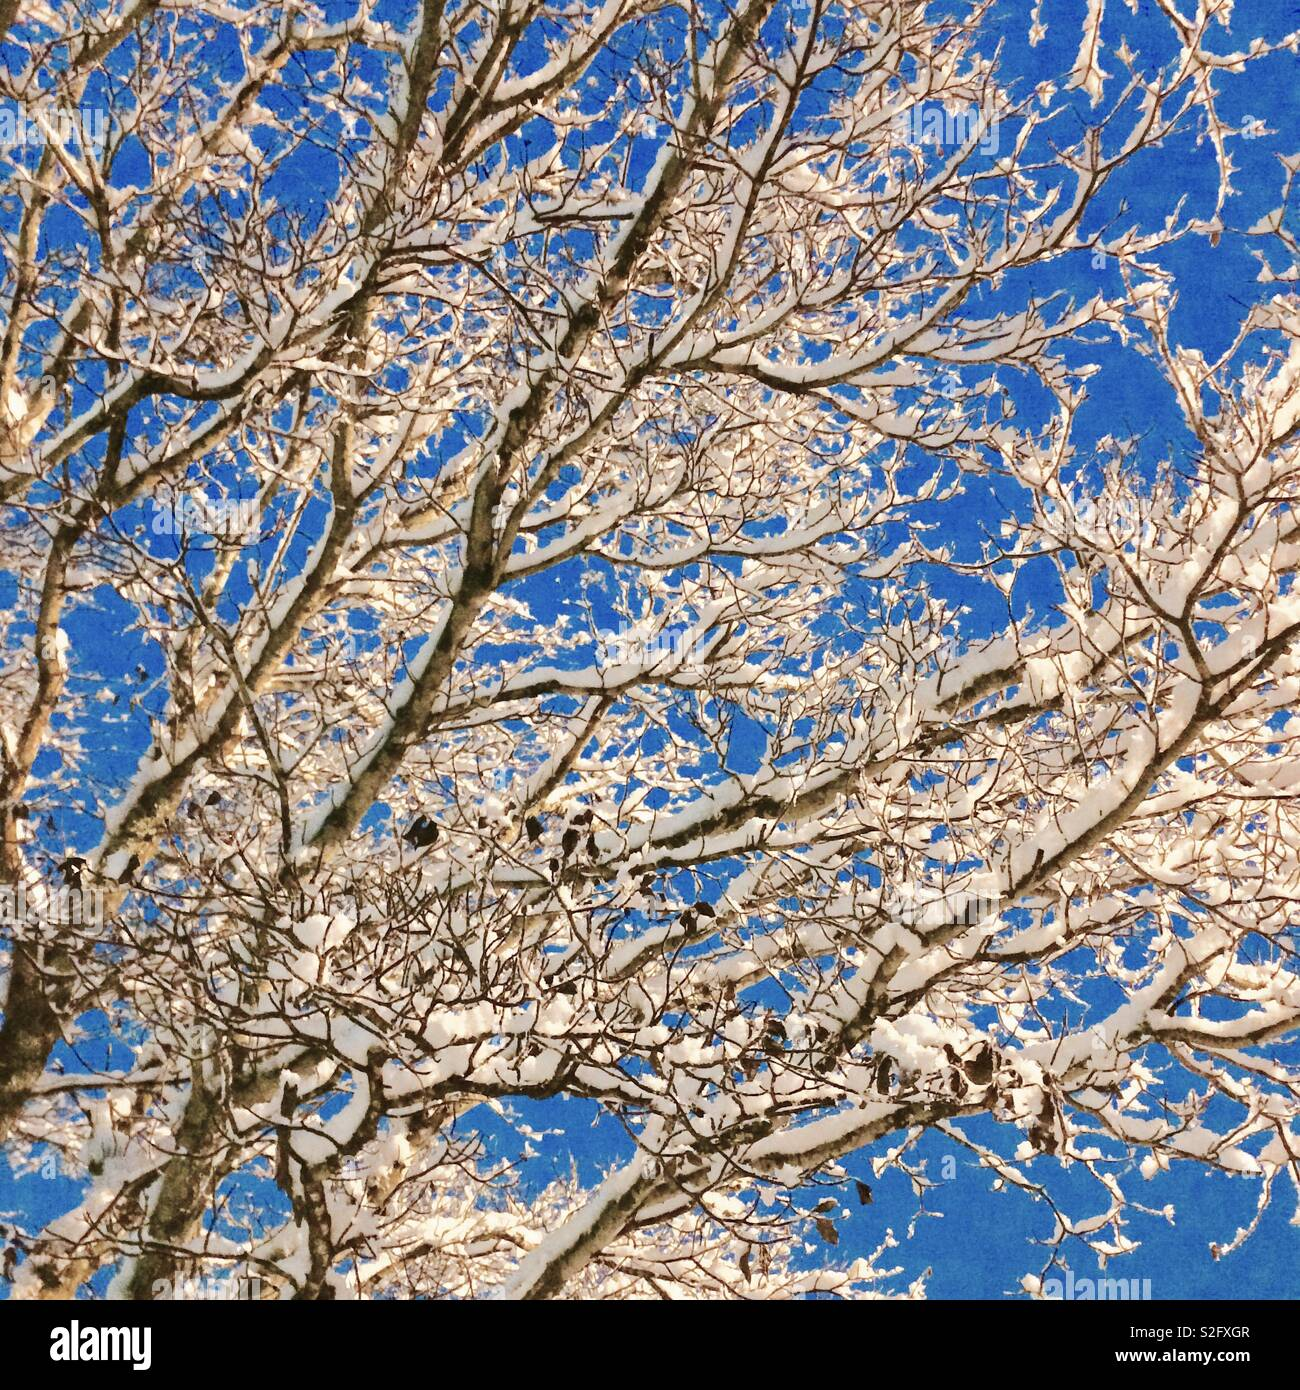 Snow covered tree limbs against blue sky. - Stock Image